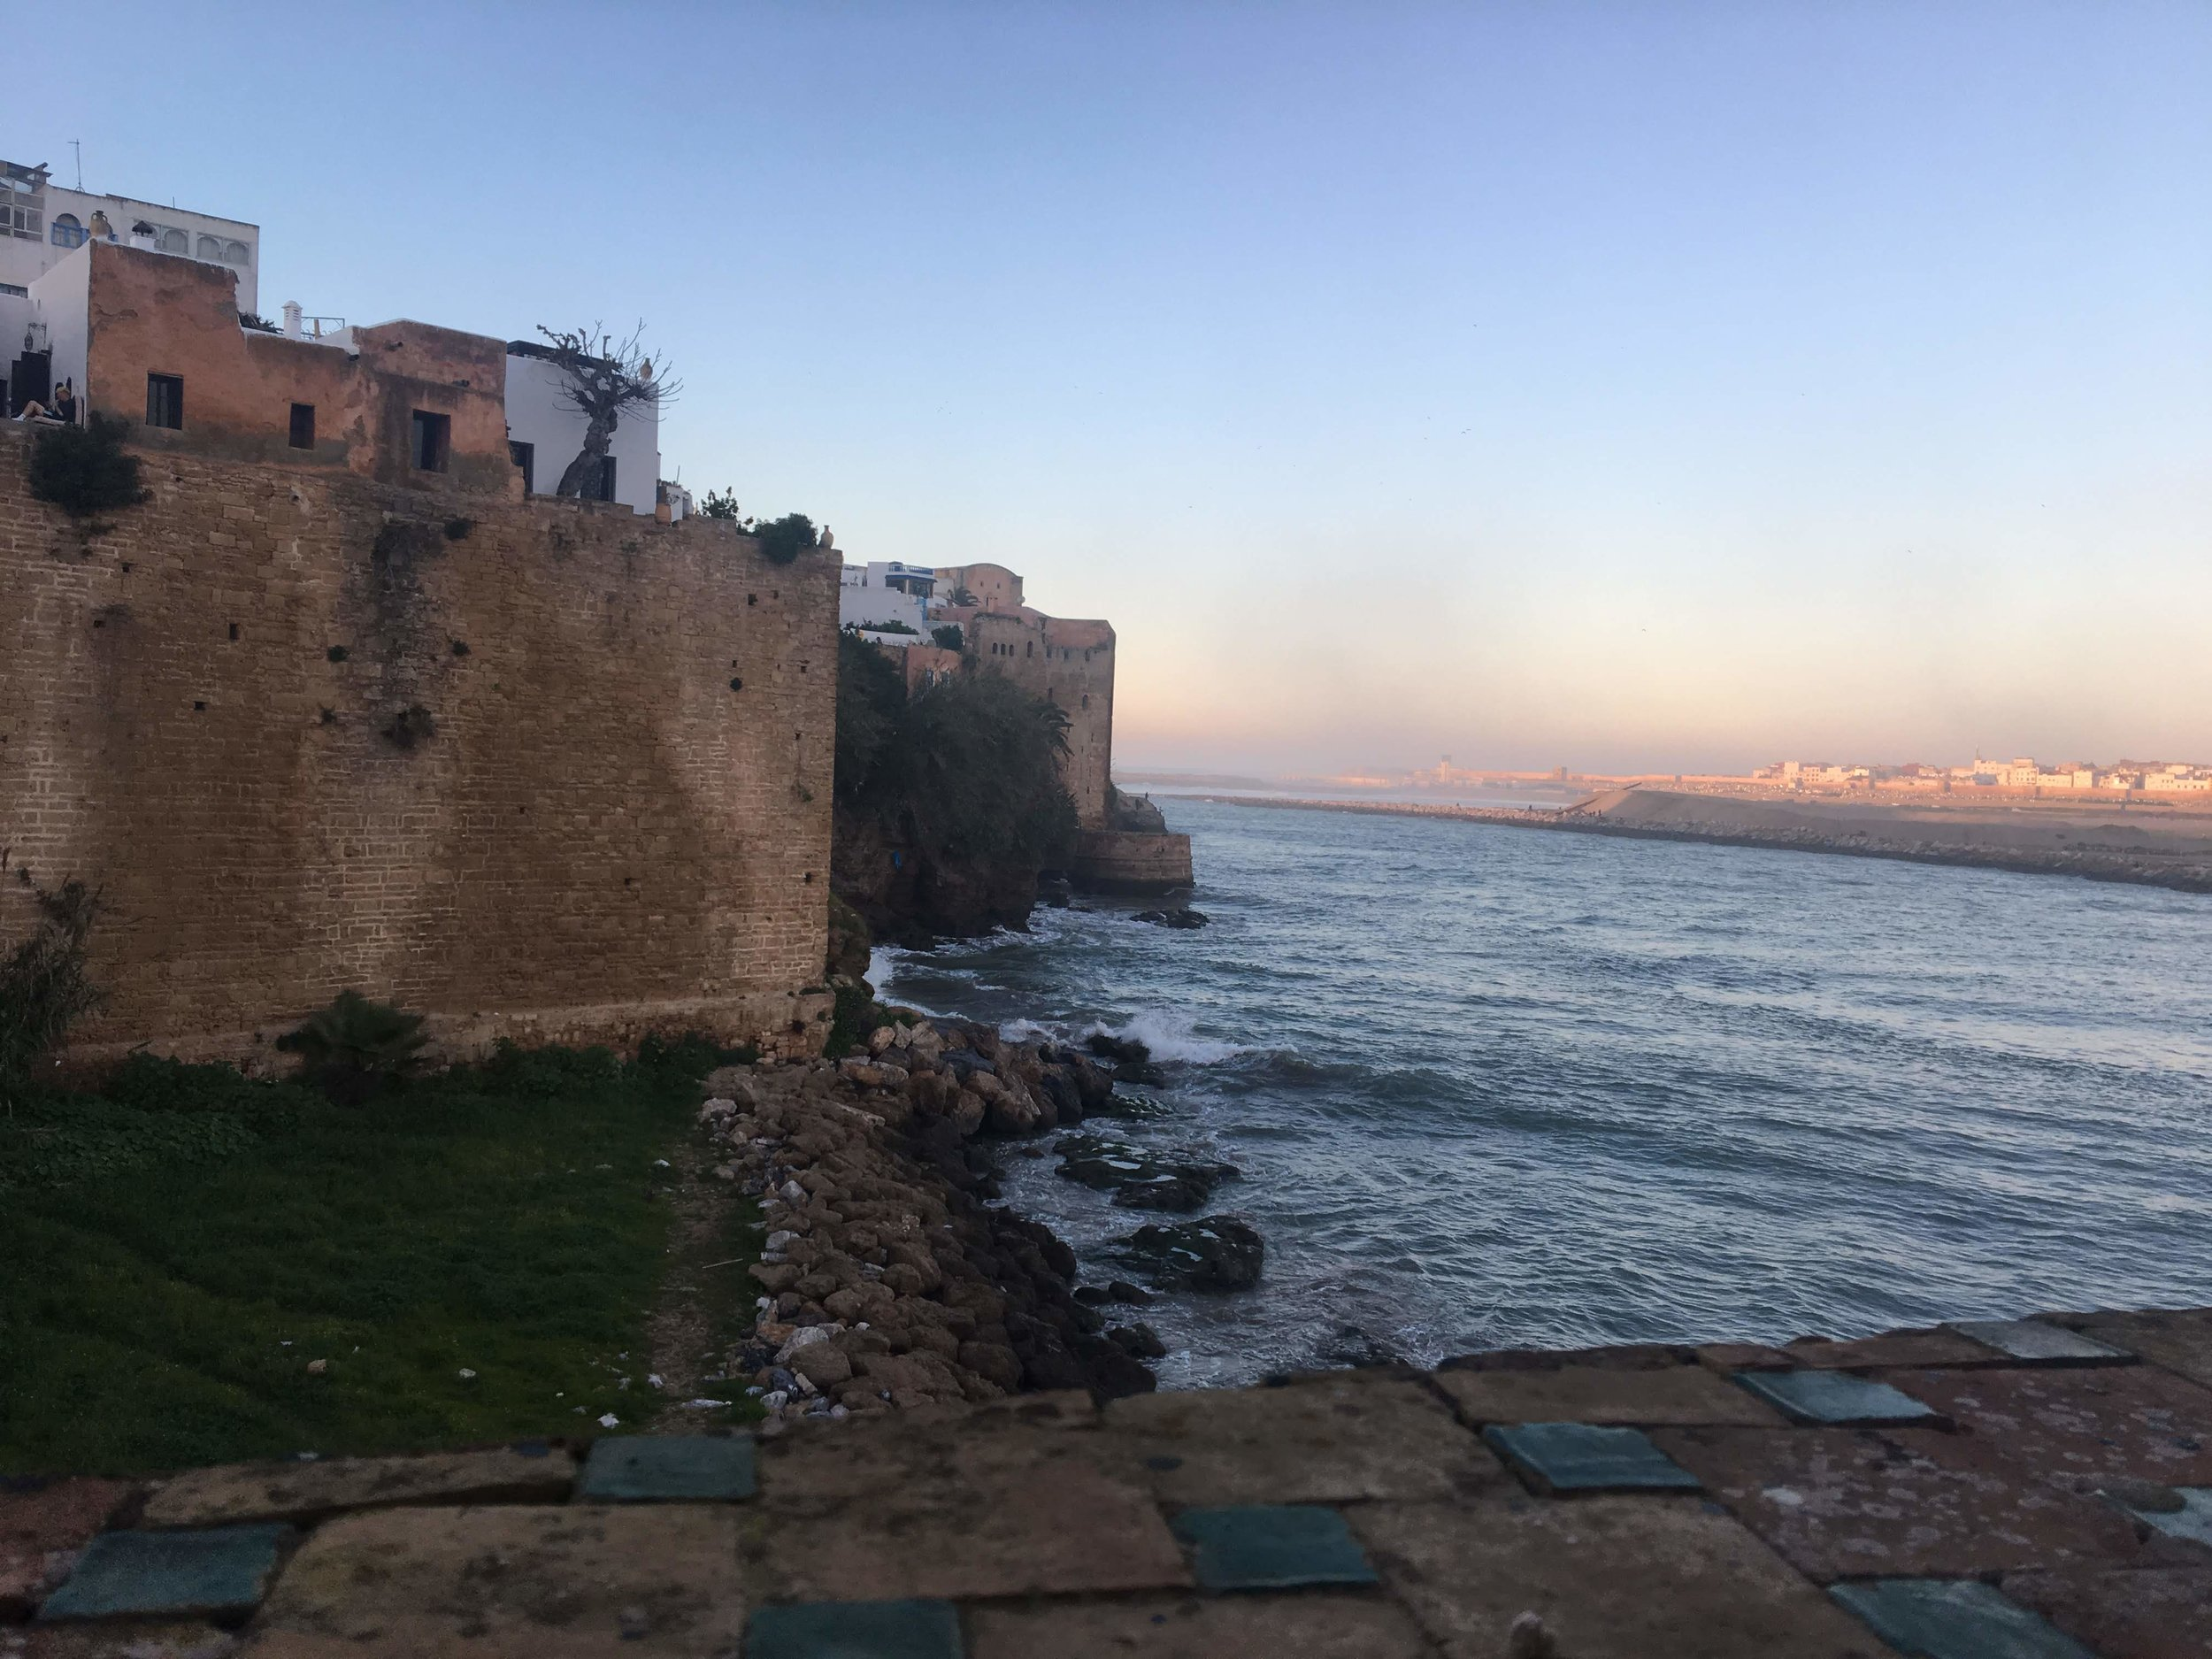 In the Kasbah in Rabat, we sit and sip mint tea, watching the reflection of the sunset on the water. One of the most beautiful corners of Rabat, the Kasbah holds cats, tourists, and a spectacular view of the water. Photo credit: Fisher, 2019